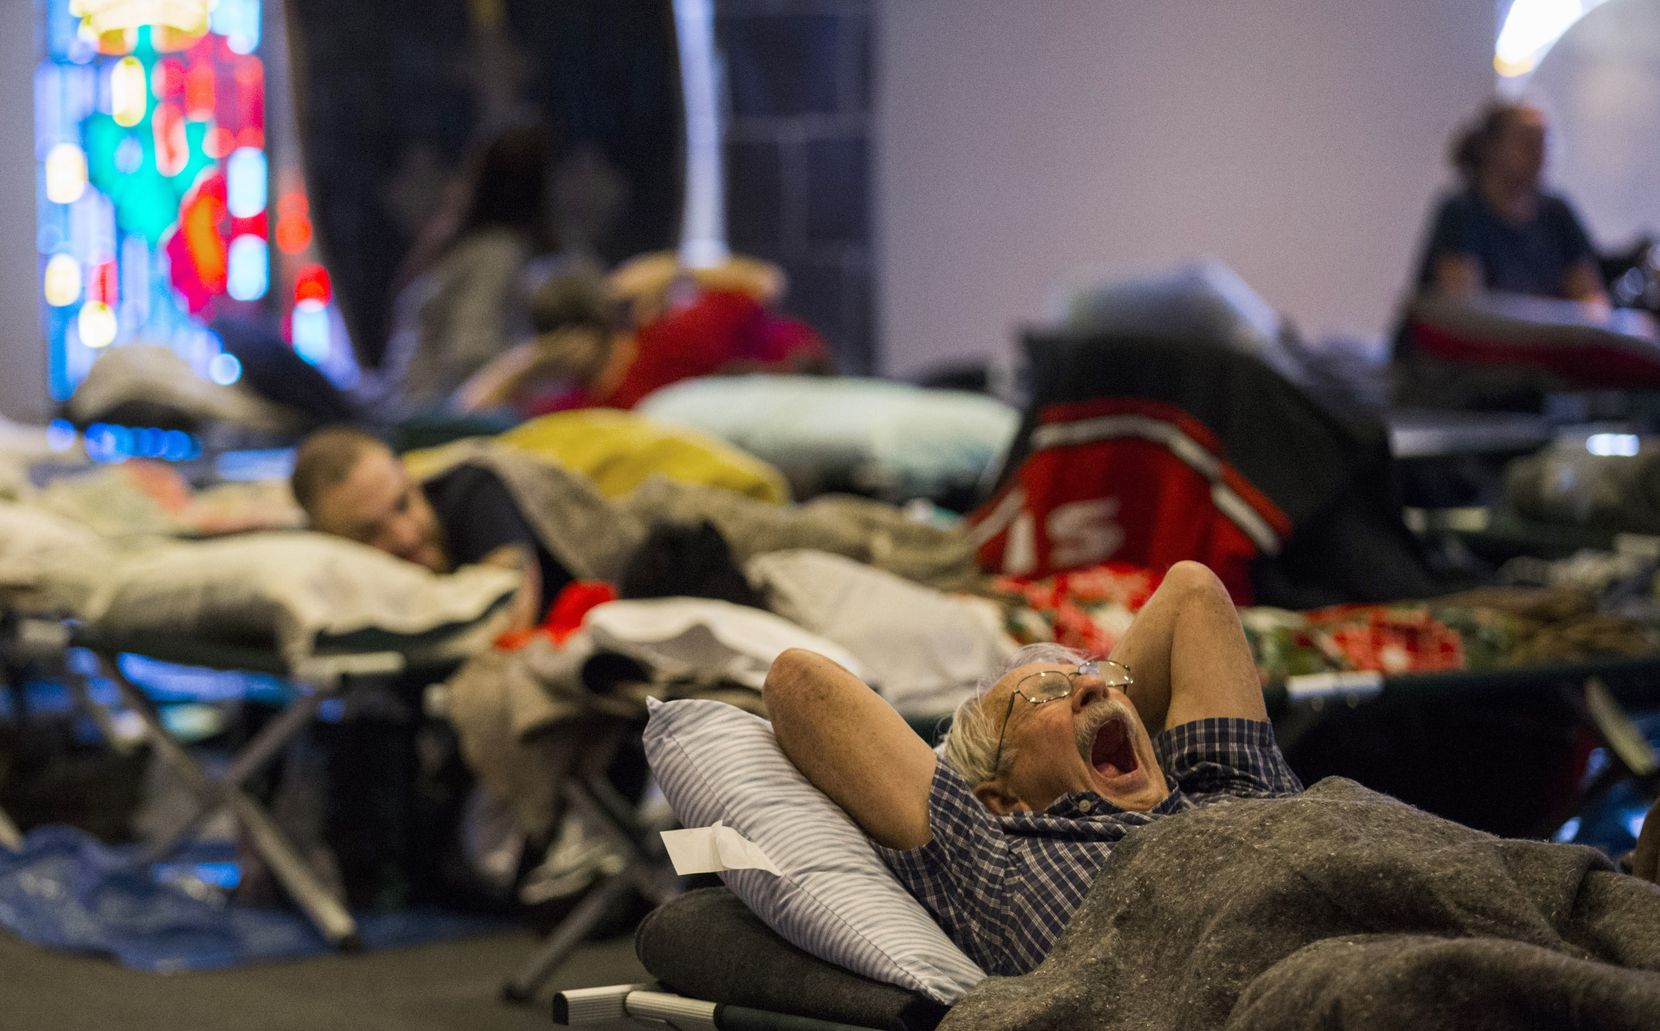 Evacuees rest on cots in a shelter at Woodcrest Church after their homes were damaged from rising flood waters due to Tropical Storm Harvey on Wednesday, August 30, 2017 in Lumberton, Texas.